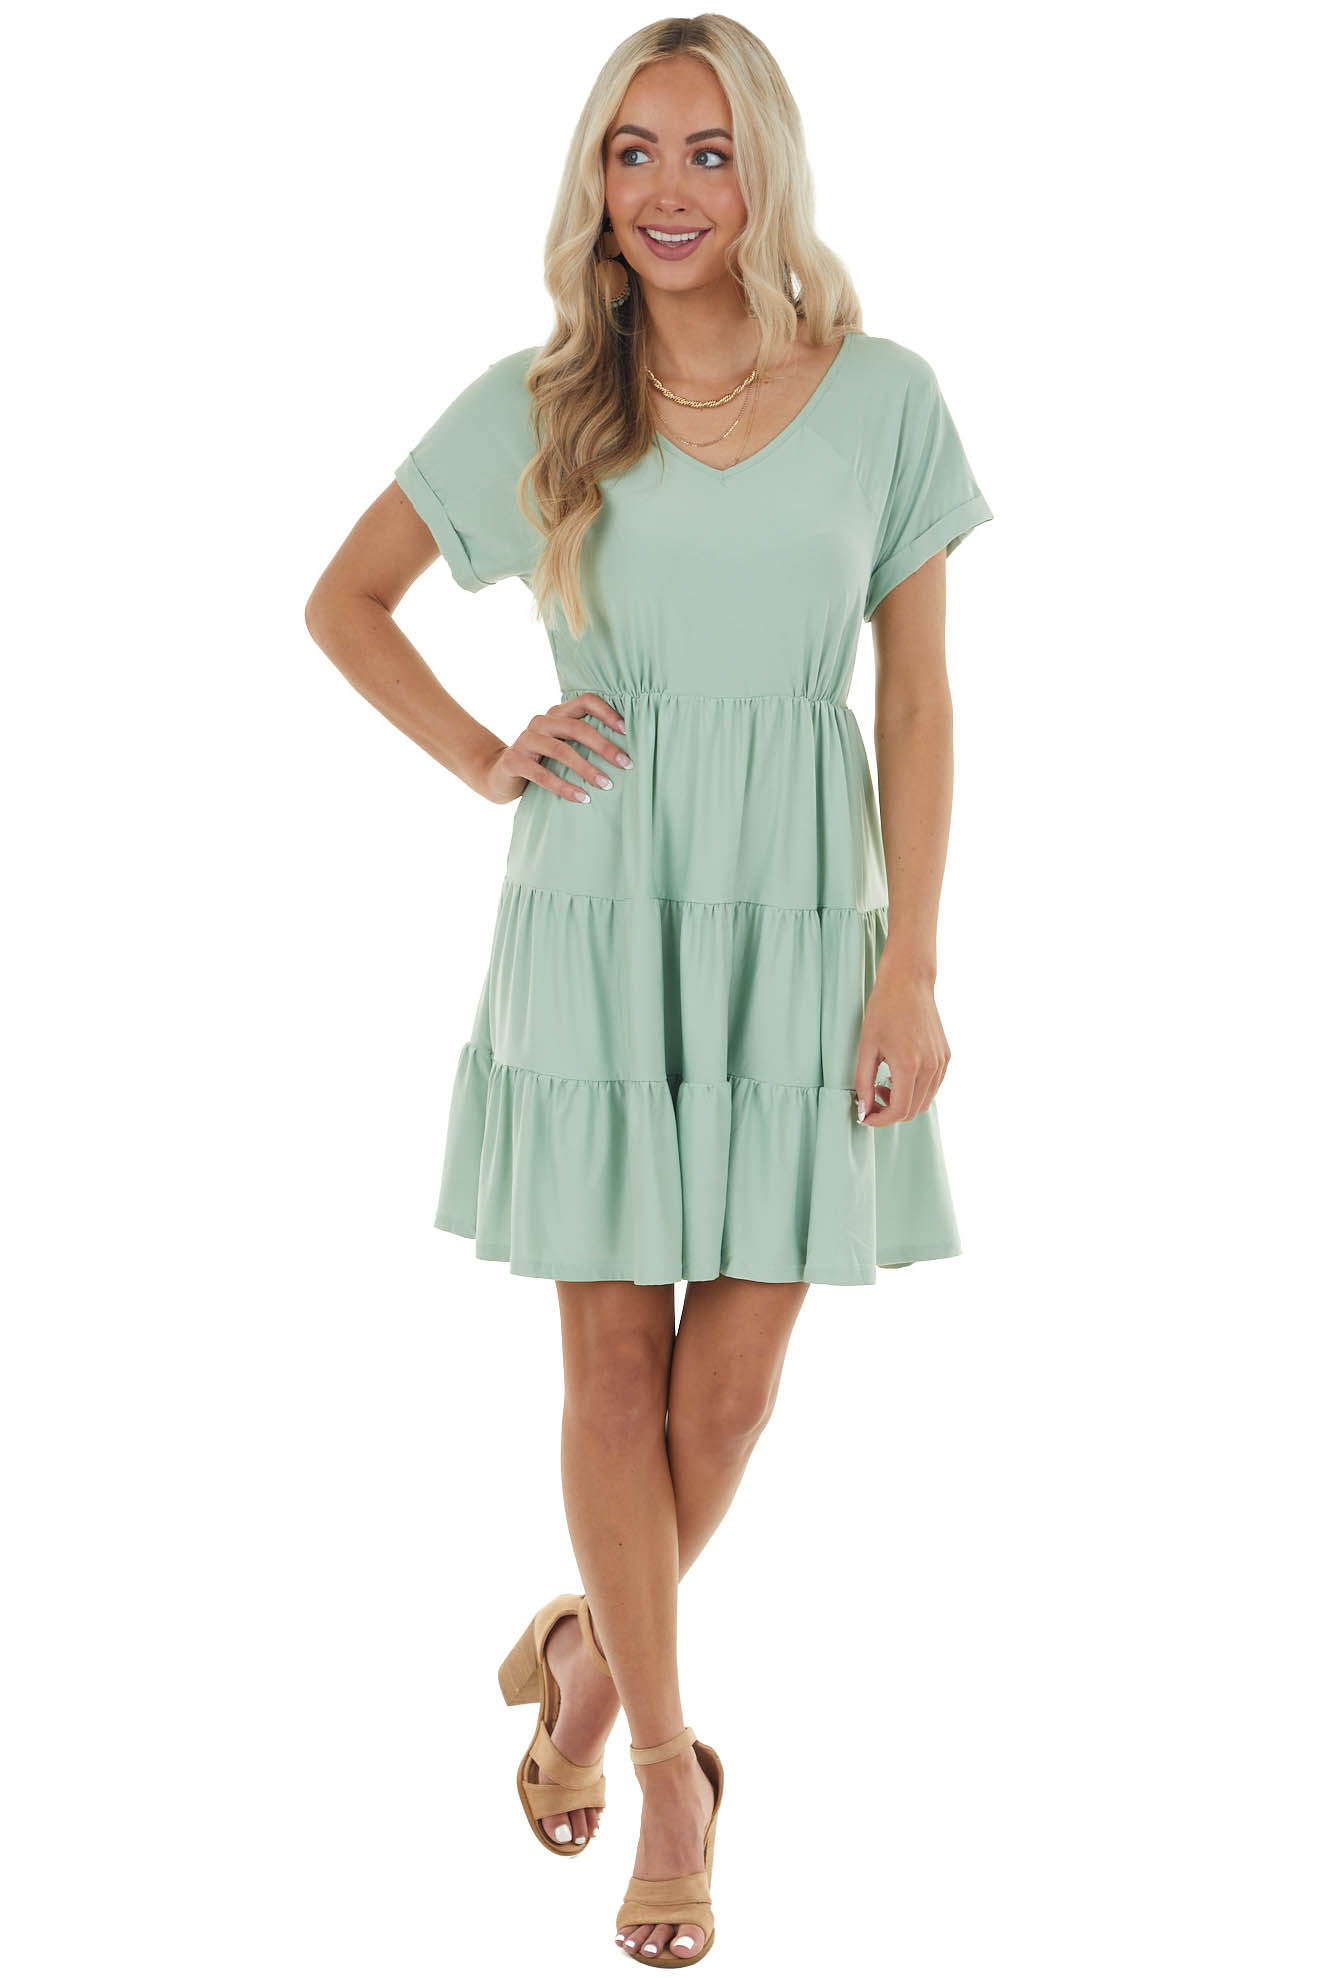 Seafoam Tiered V Neck Dress with Short Sleeves